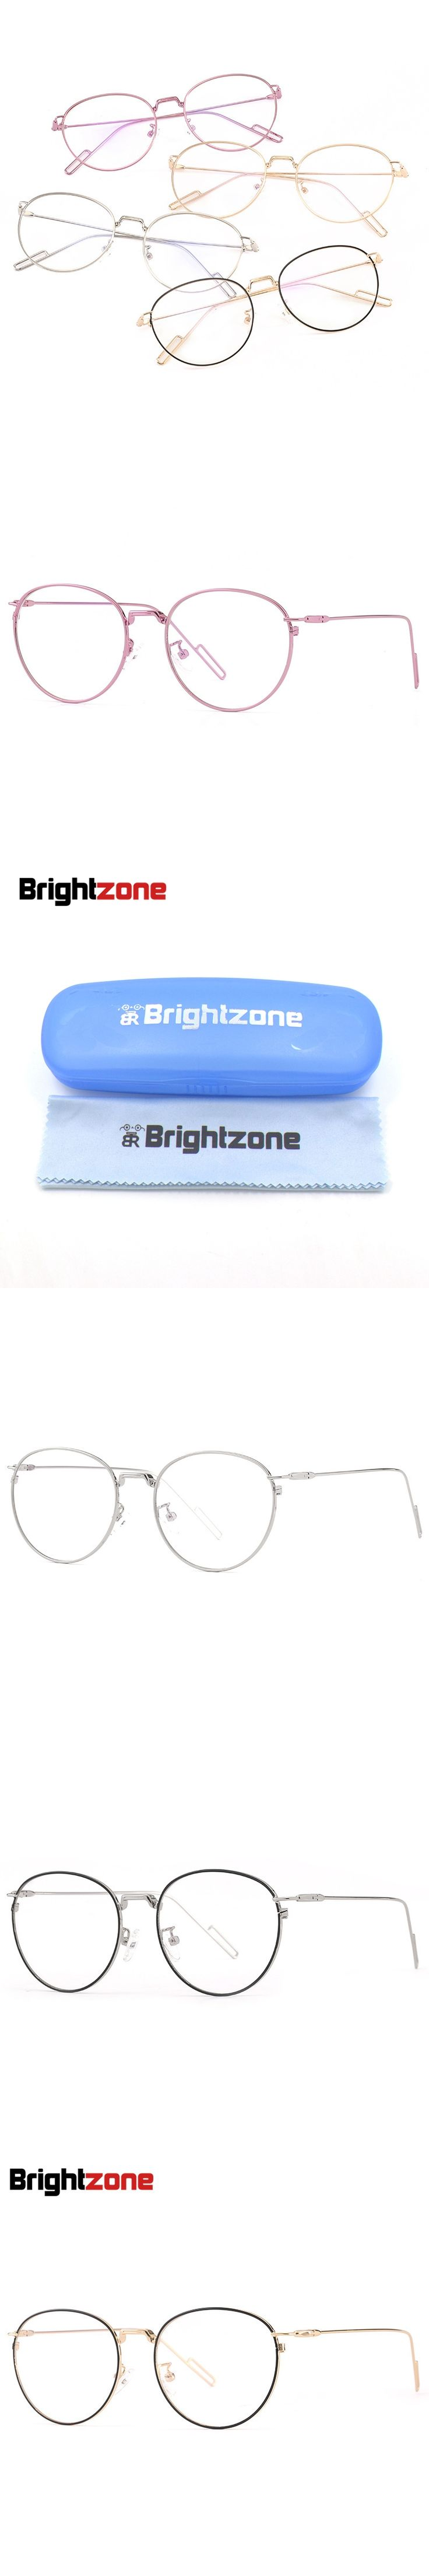 D Home Eye Picture Frame Fashion Men And Women A Glasses European Trend Plain Glass Spectacles Frame Trendsetter Necessary